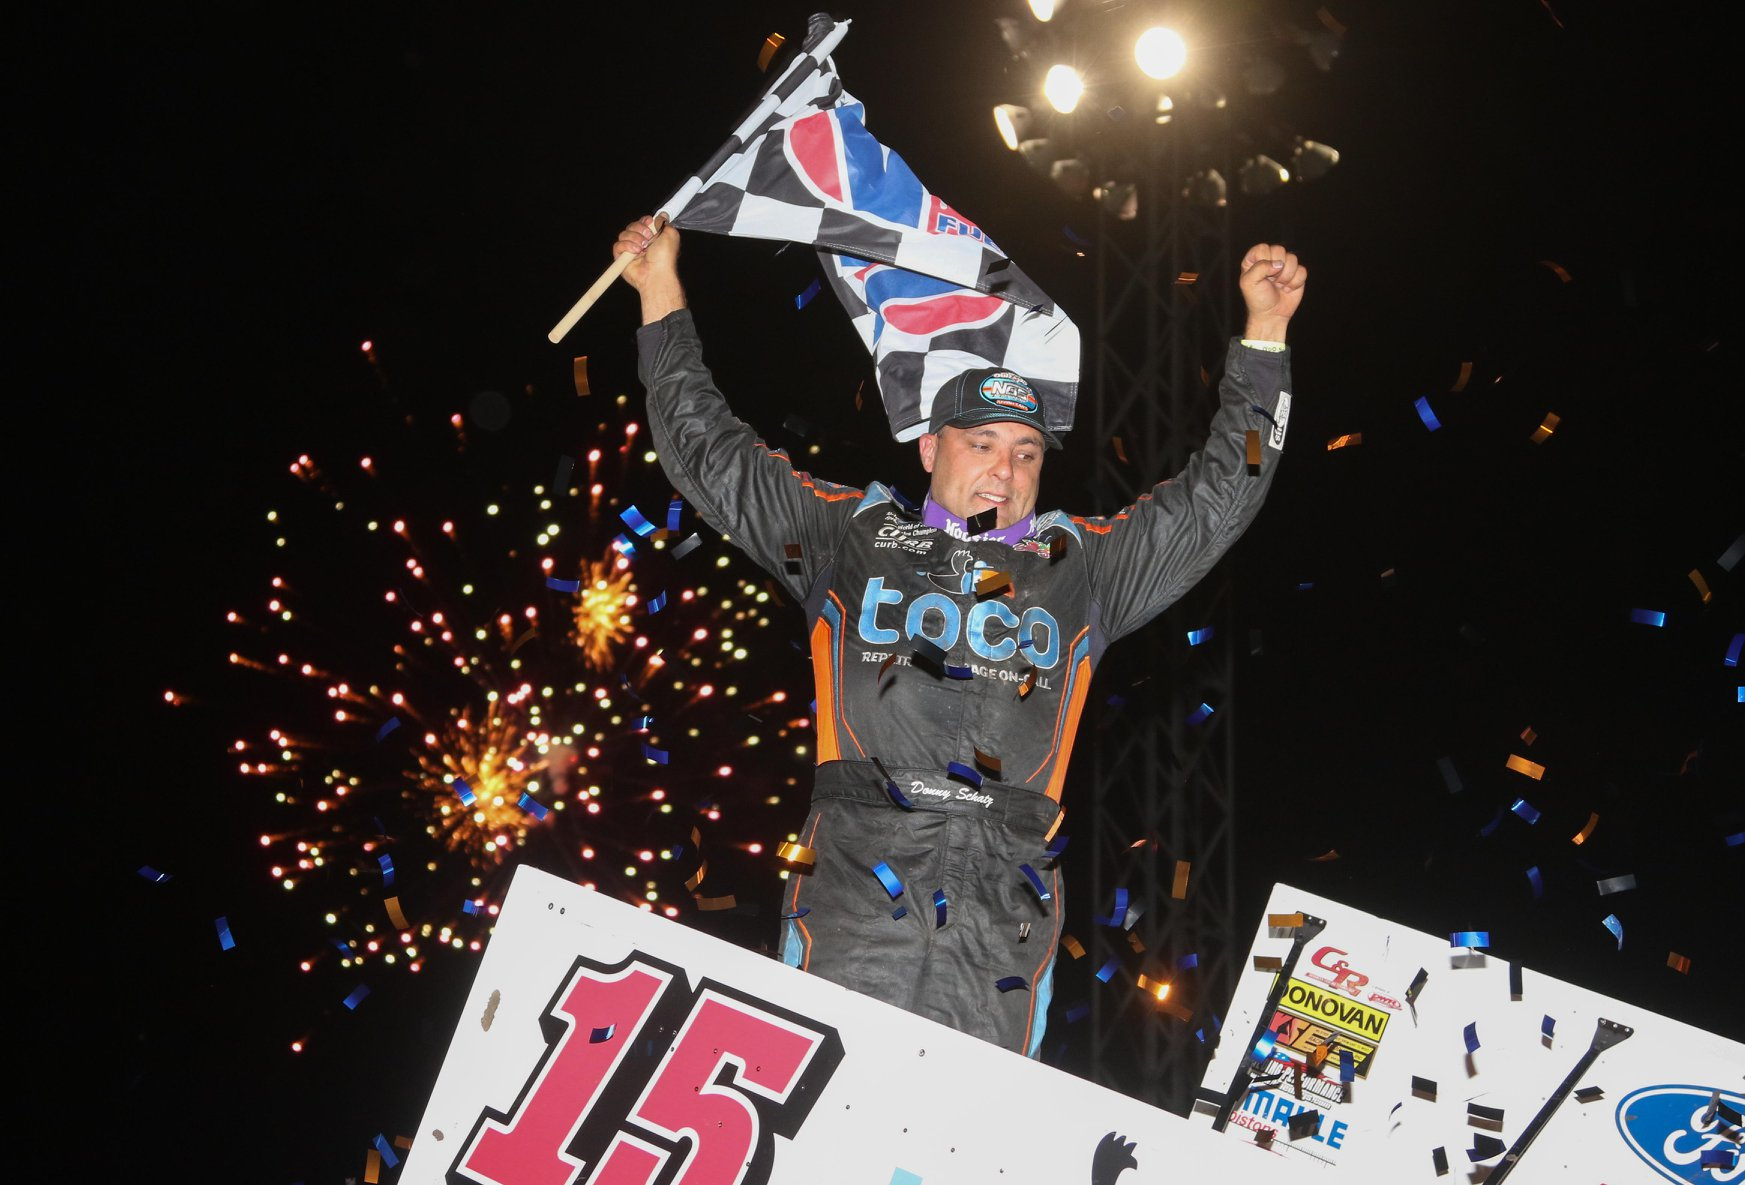 Schatz Storms to 12th Career Outlaws Win at River Cities Speedway